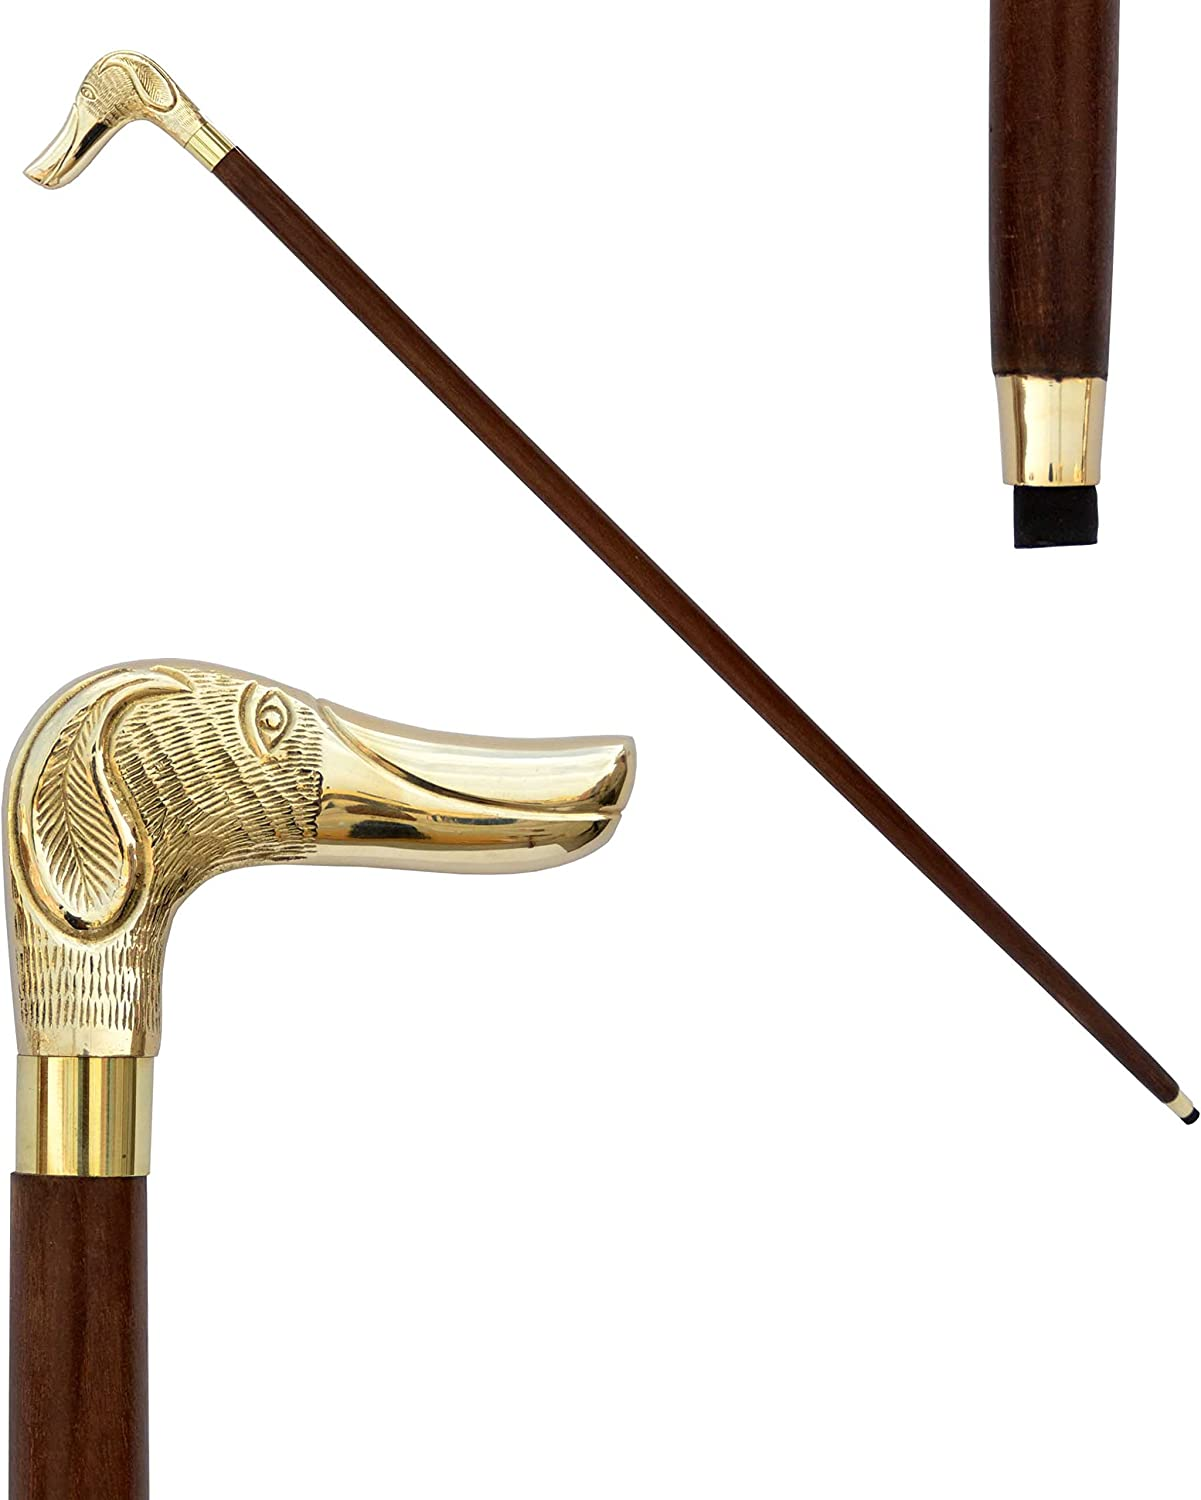 """Nautical World Gifts Wooden 37/"""" Decorative Walking Stick Cane for Men and Women with Metal Brass Handle Design1"""